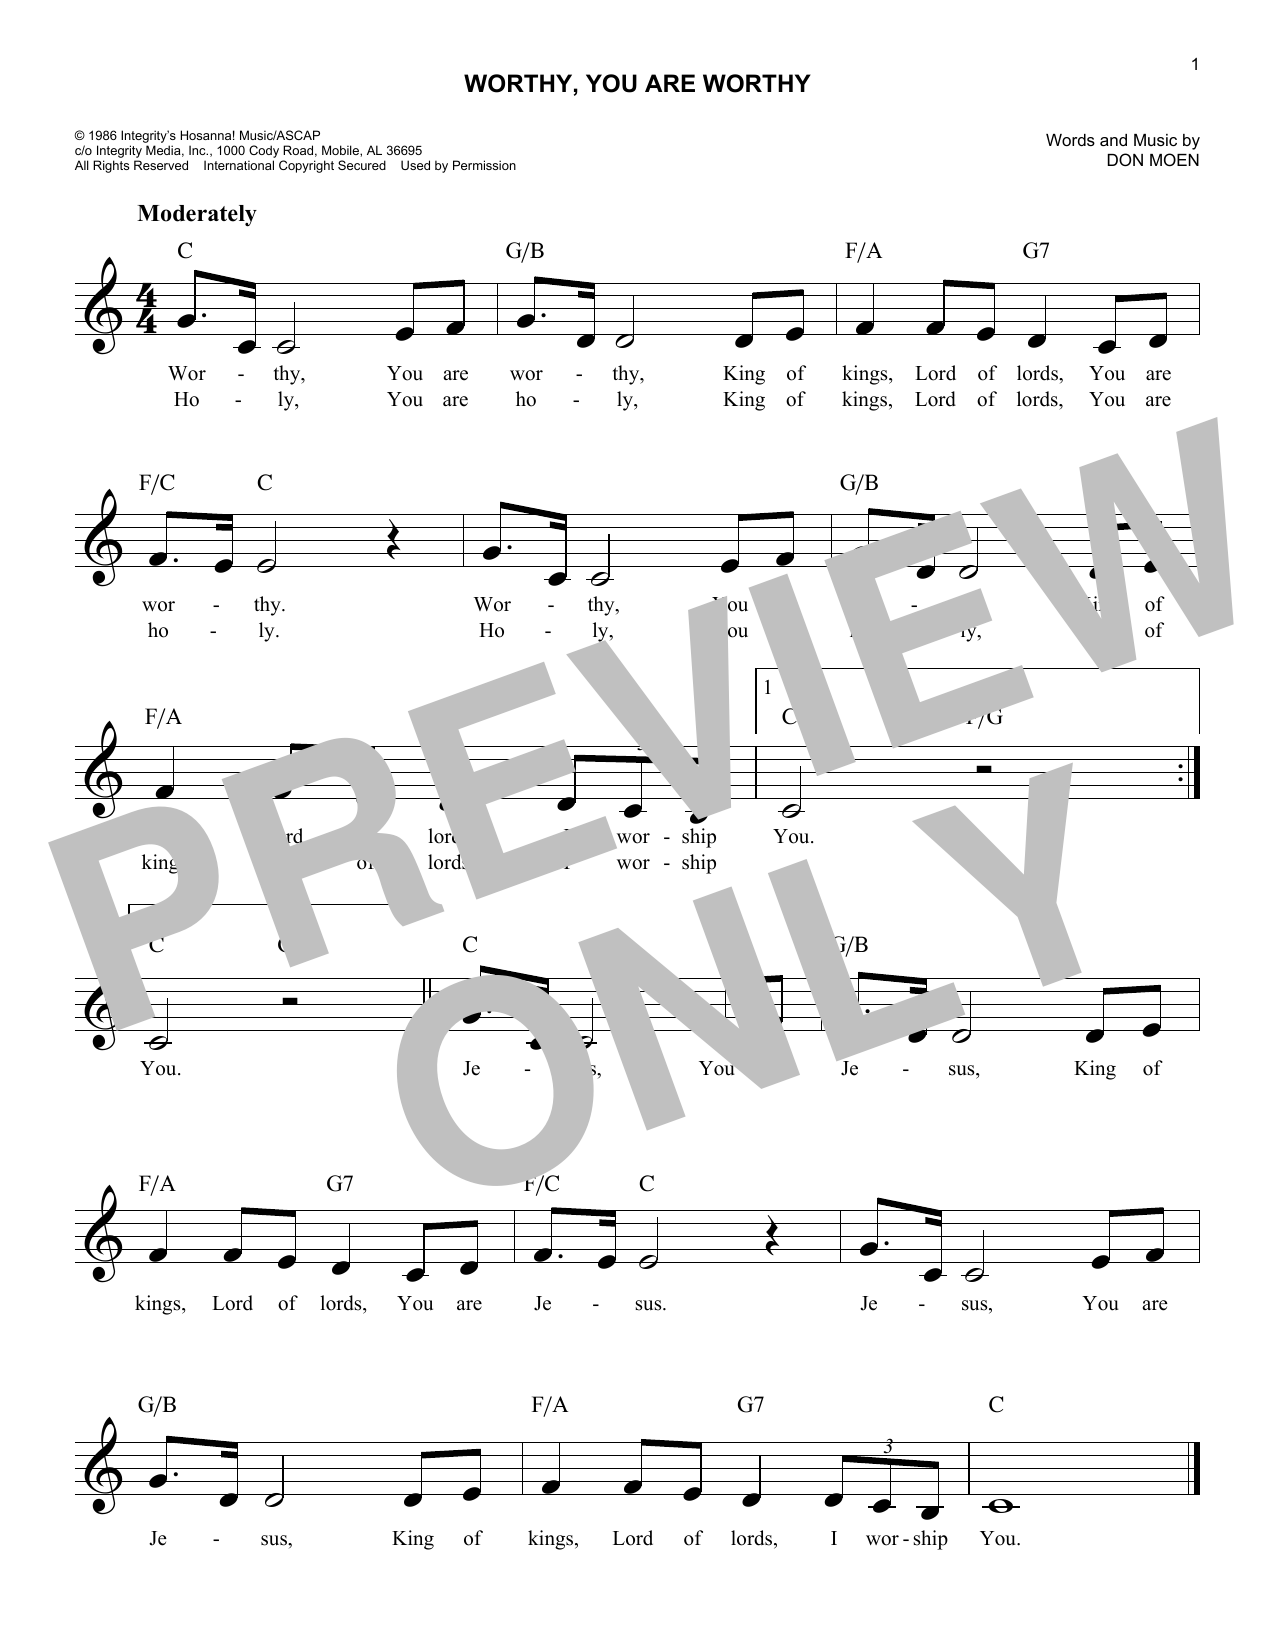 Don Moen Worthy You Are Worthy Sheet Music Notes Chords